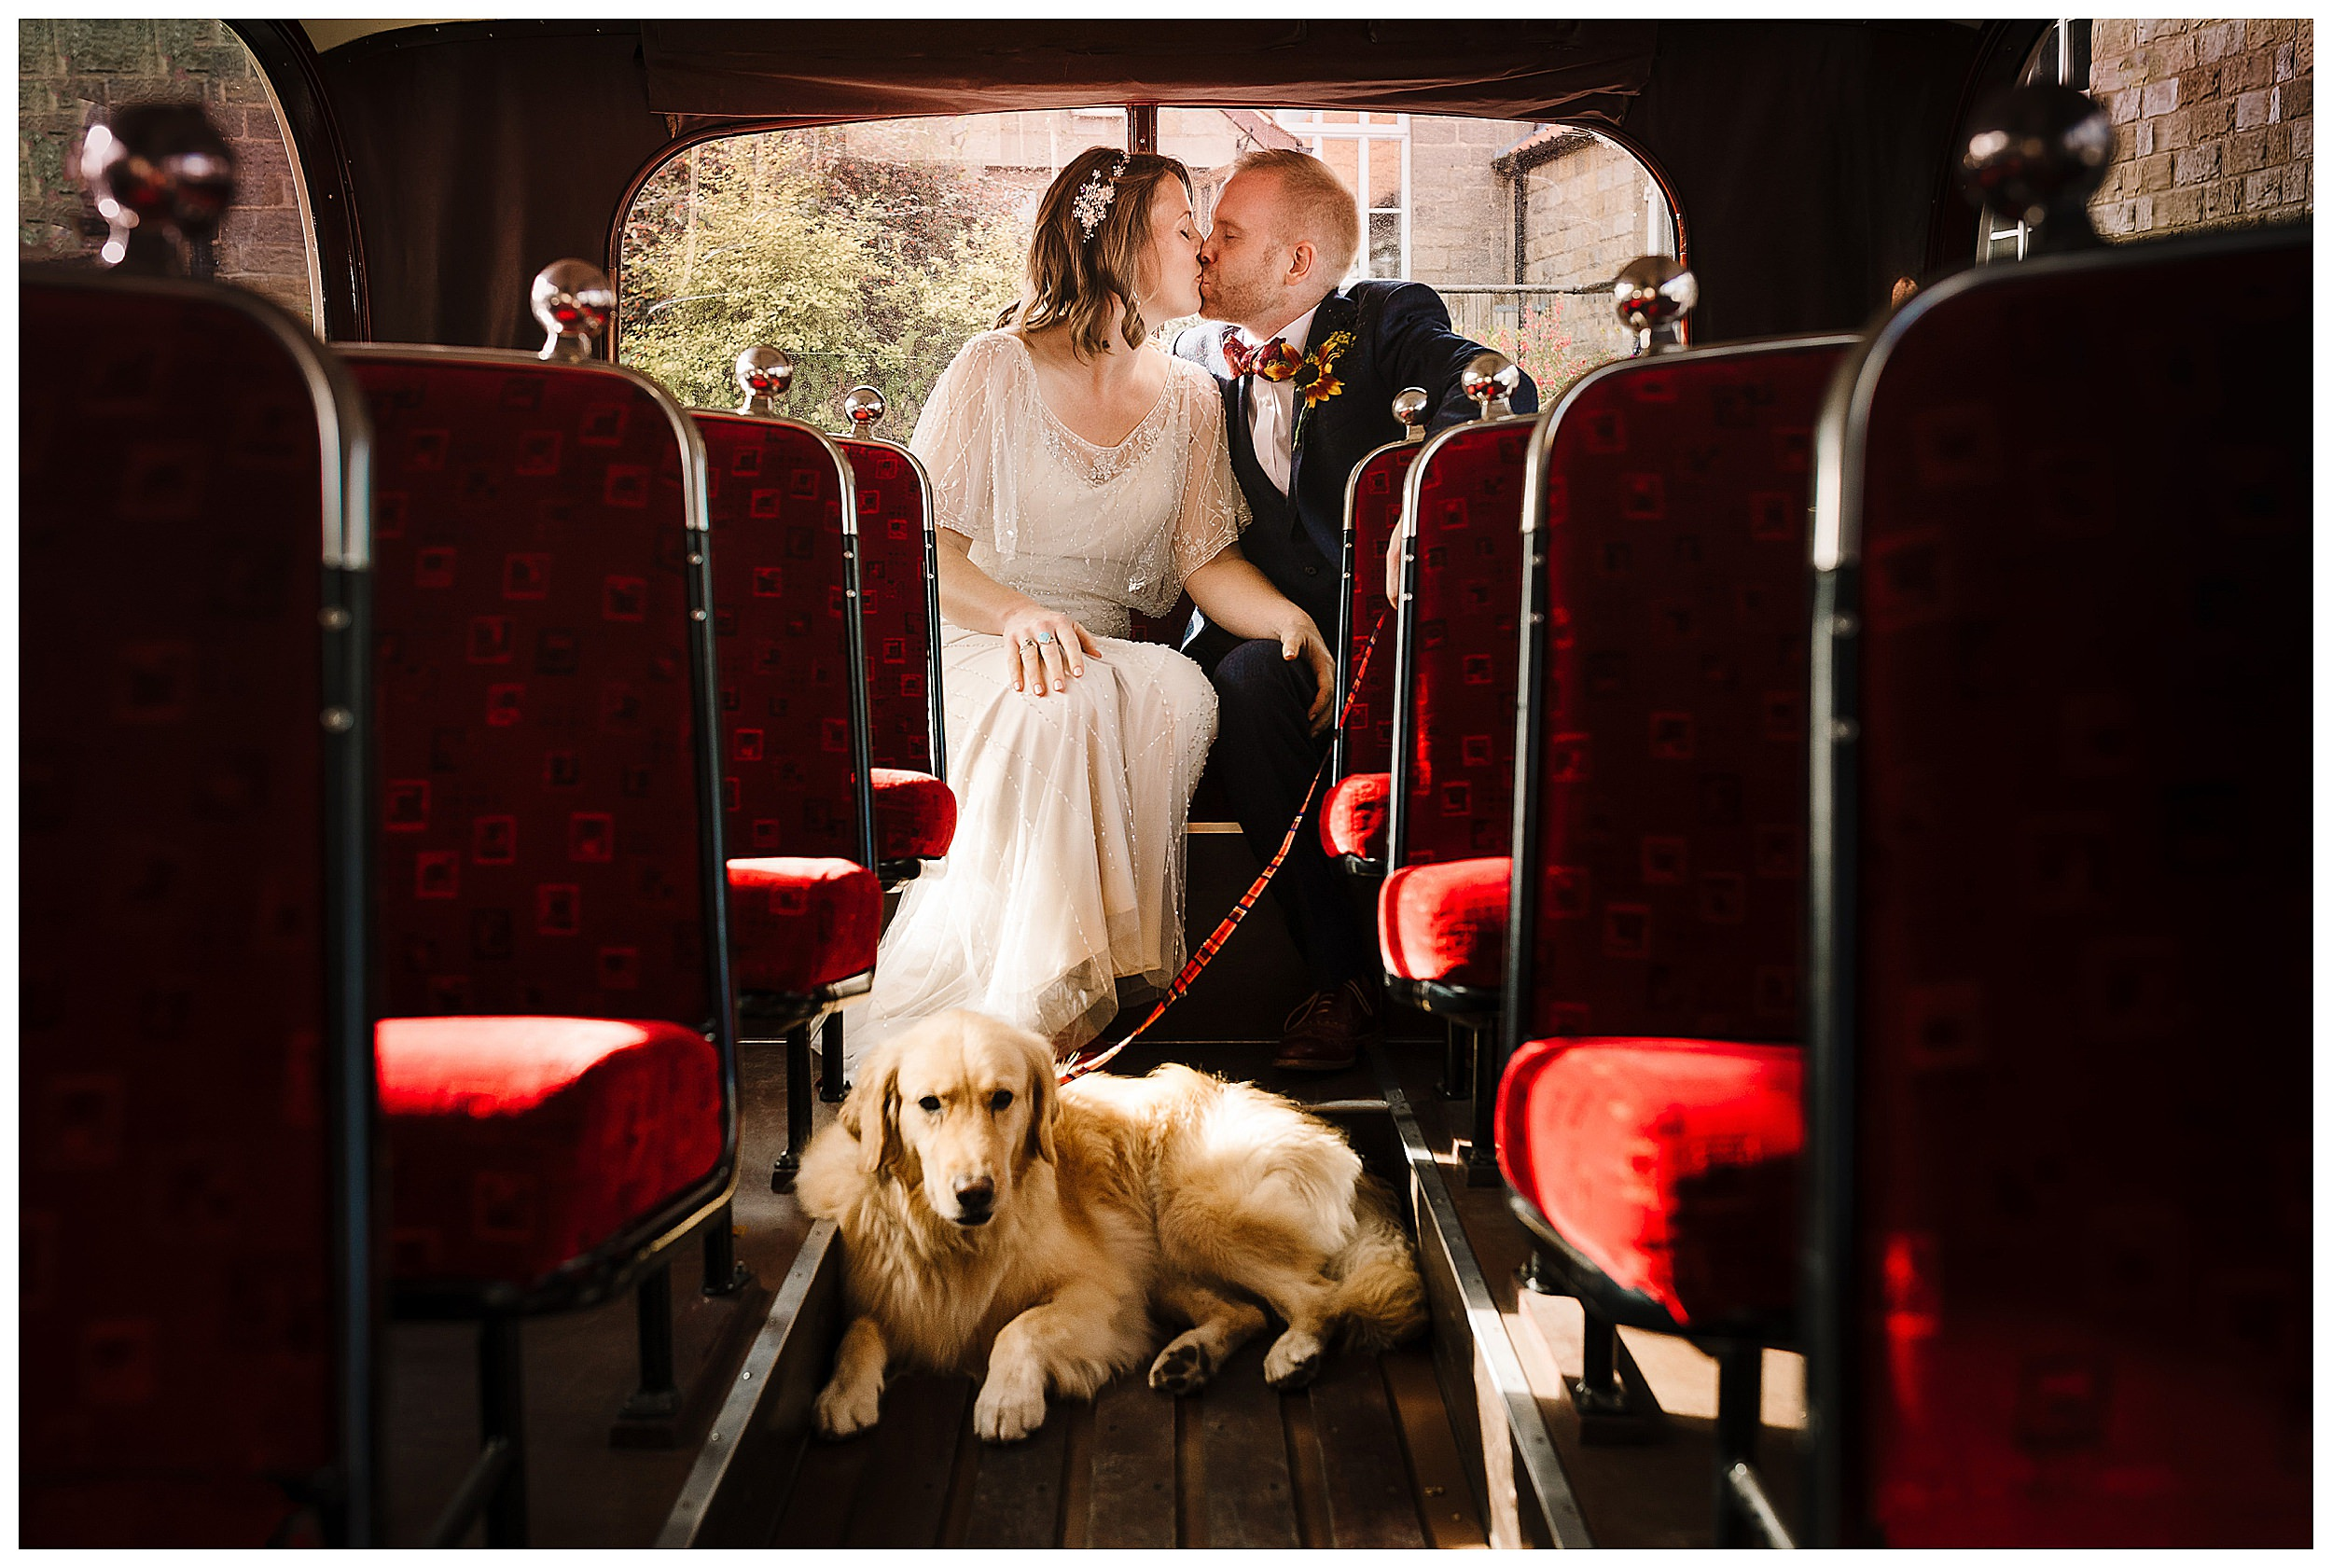 A bride and groom sat on a vintage bus kissing with their dog at their feet